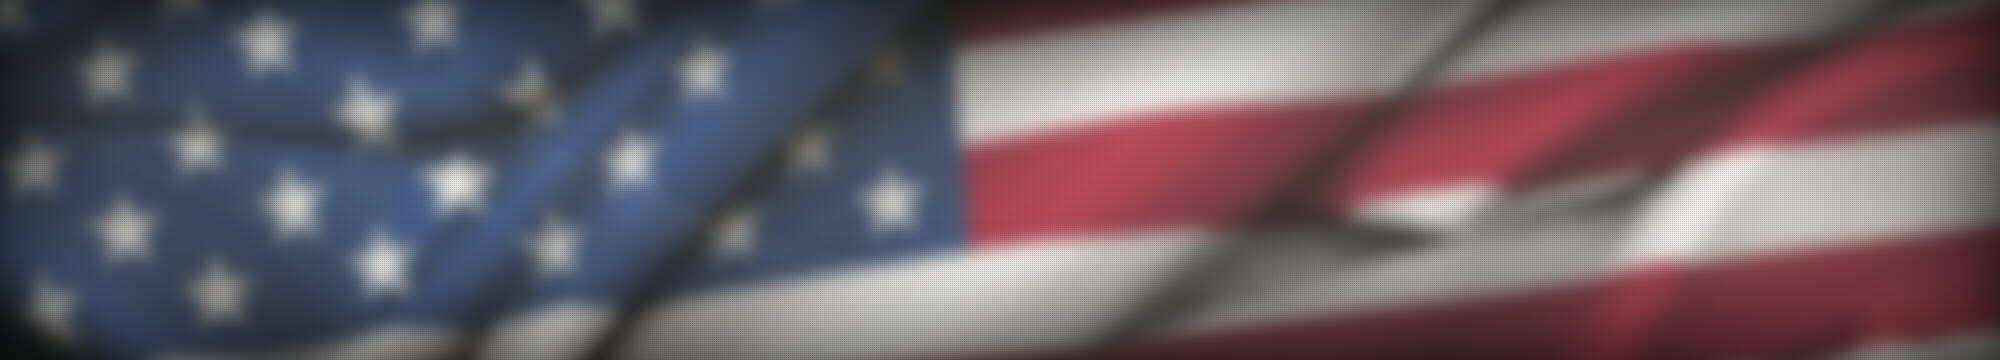 flag-background2